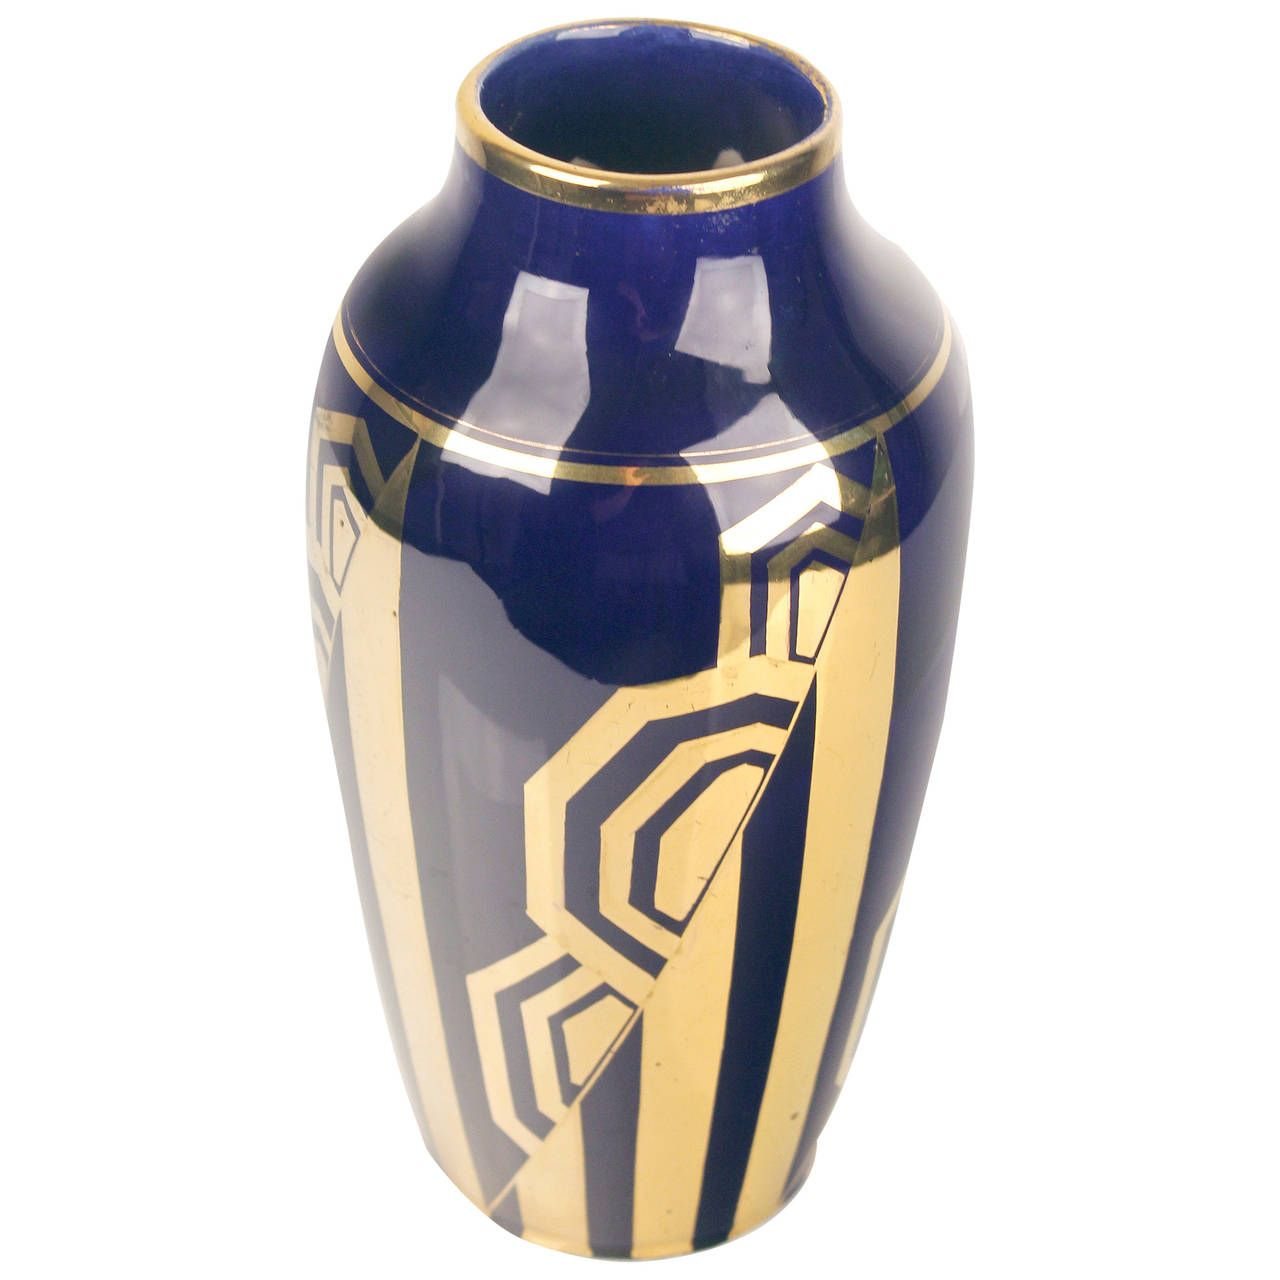 French art deco vase by odyv egyptian revival french art art french art deco vase by odyv egyptian revival floridaeventfo Image collections